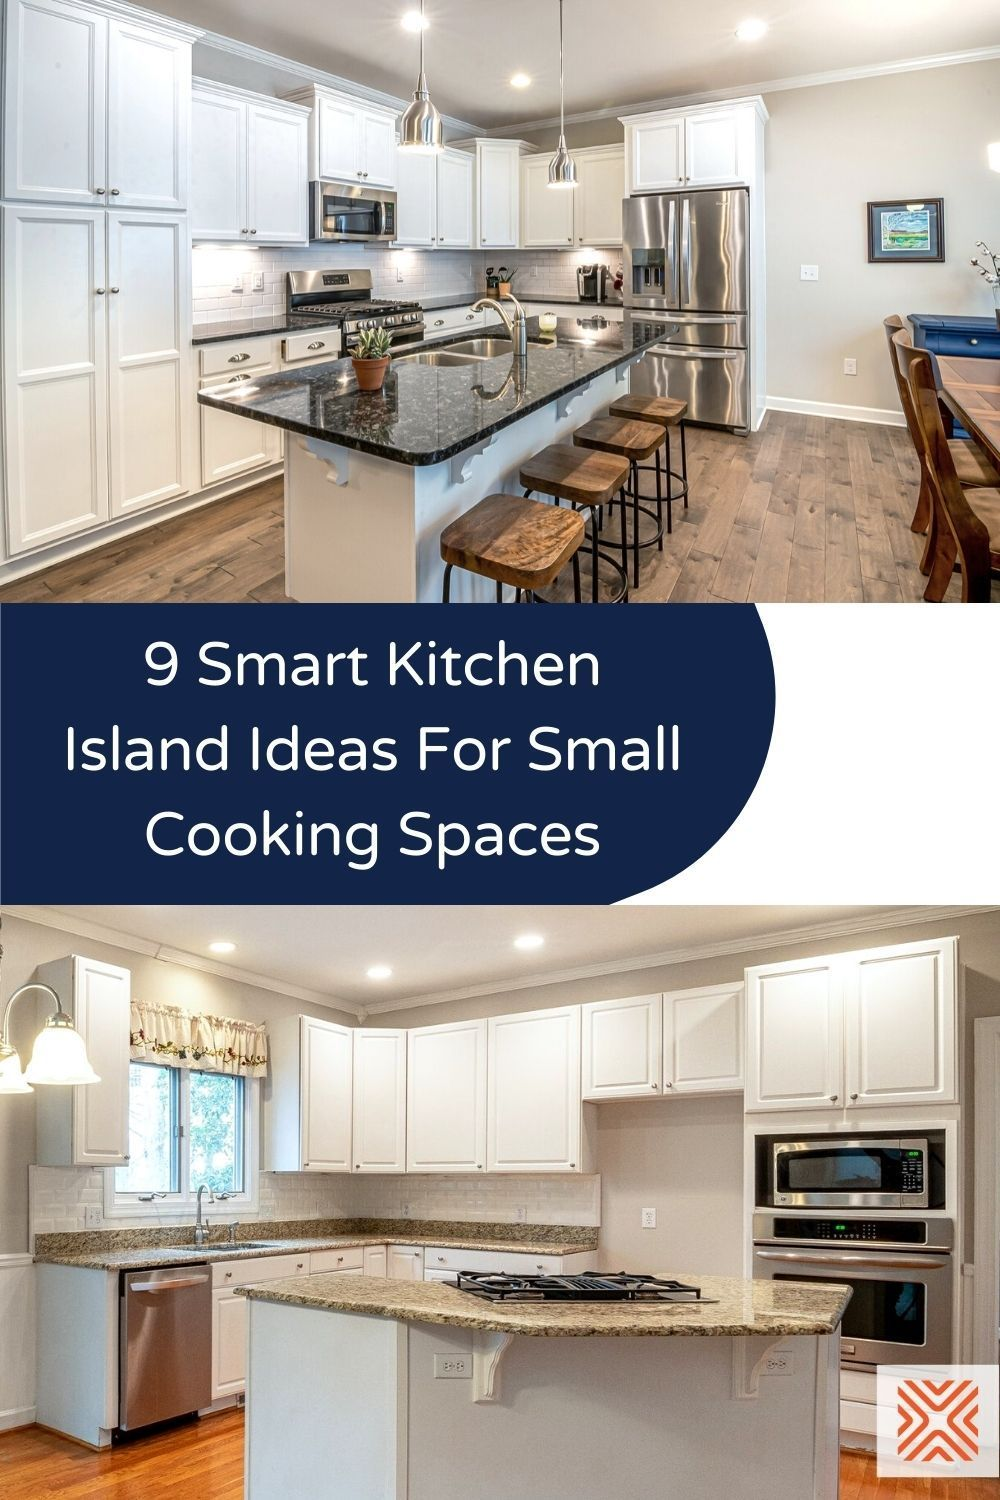 Not enough workspace in your kitchen? Our 9 small kitchen island ideas will inspire you to choose a kitchen island that makes the most of your kitchen layout without interrupting the workflow.